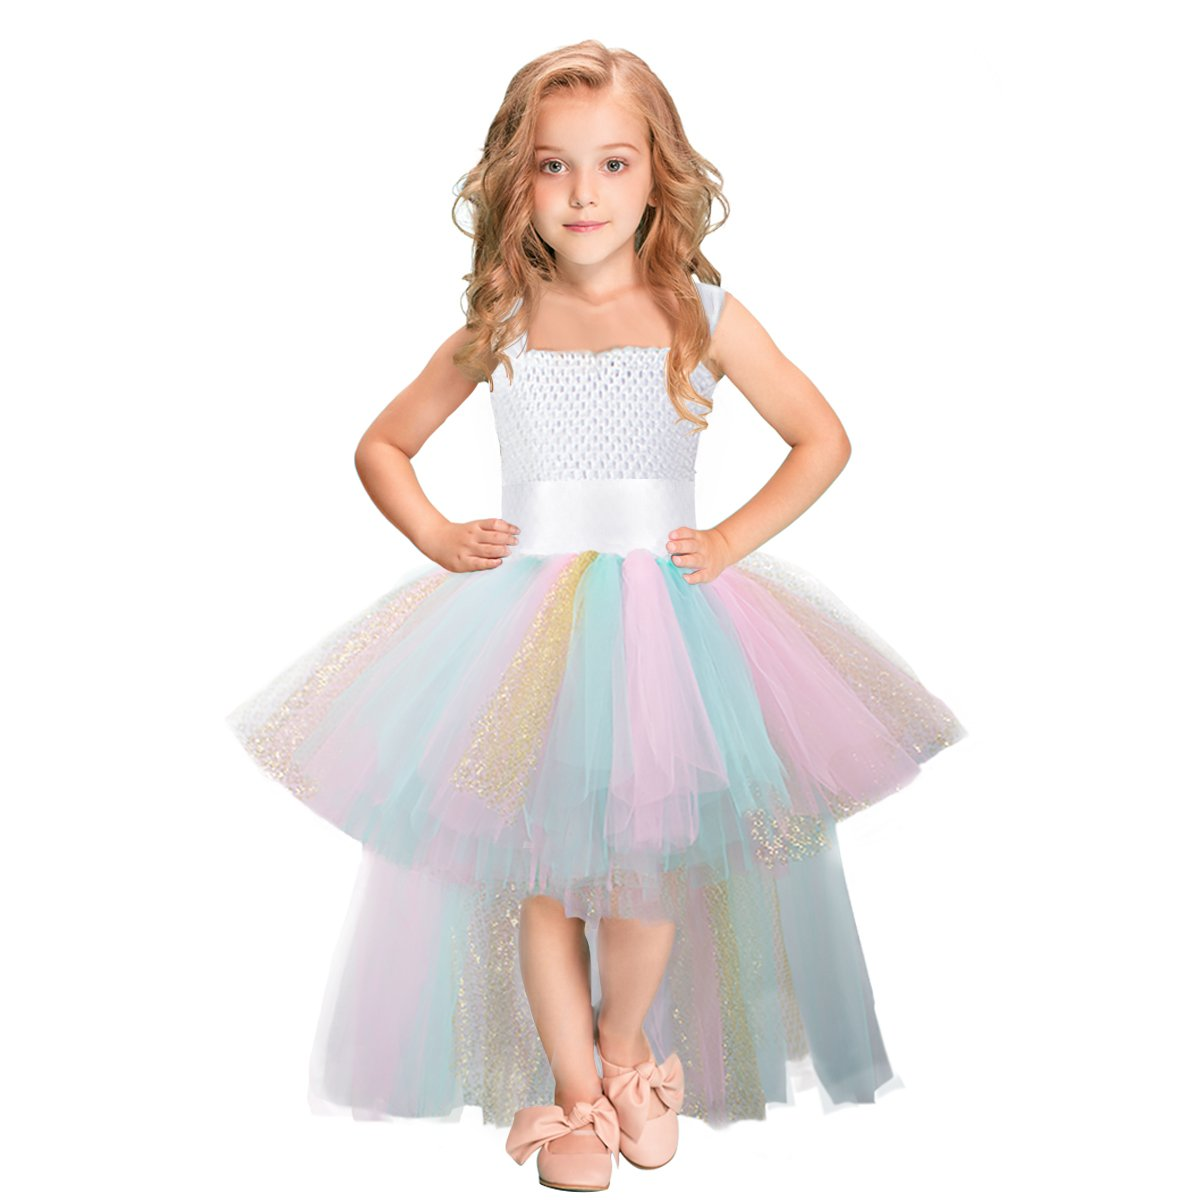 Tutu Dress for Girls Handmade Rainbow Tulle Dress for Unicorn Party Special Occasion (Mint+Pink+Gold)